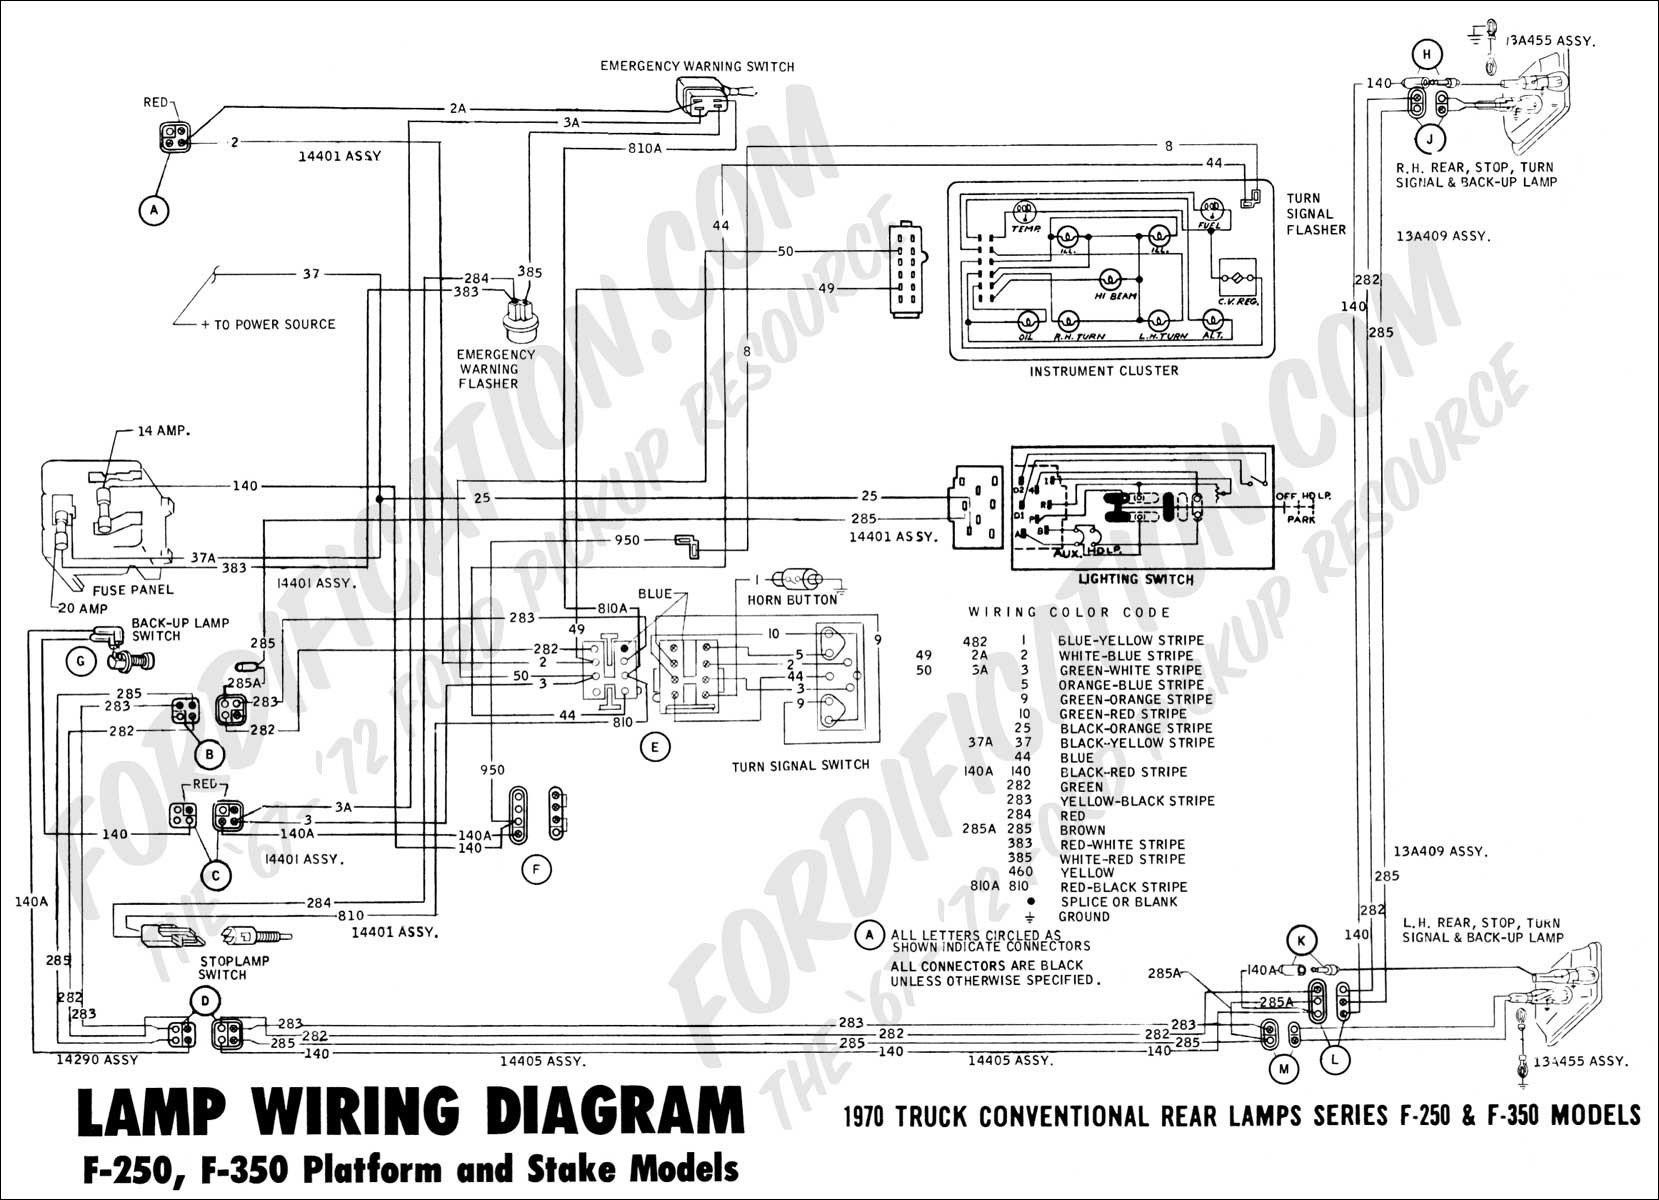 0F6C49C Tail And Stop Light Wiring Diagram Free Picture | Wiring LibraryWiring Library